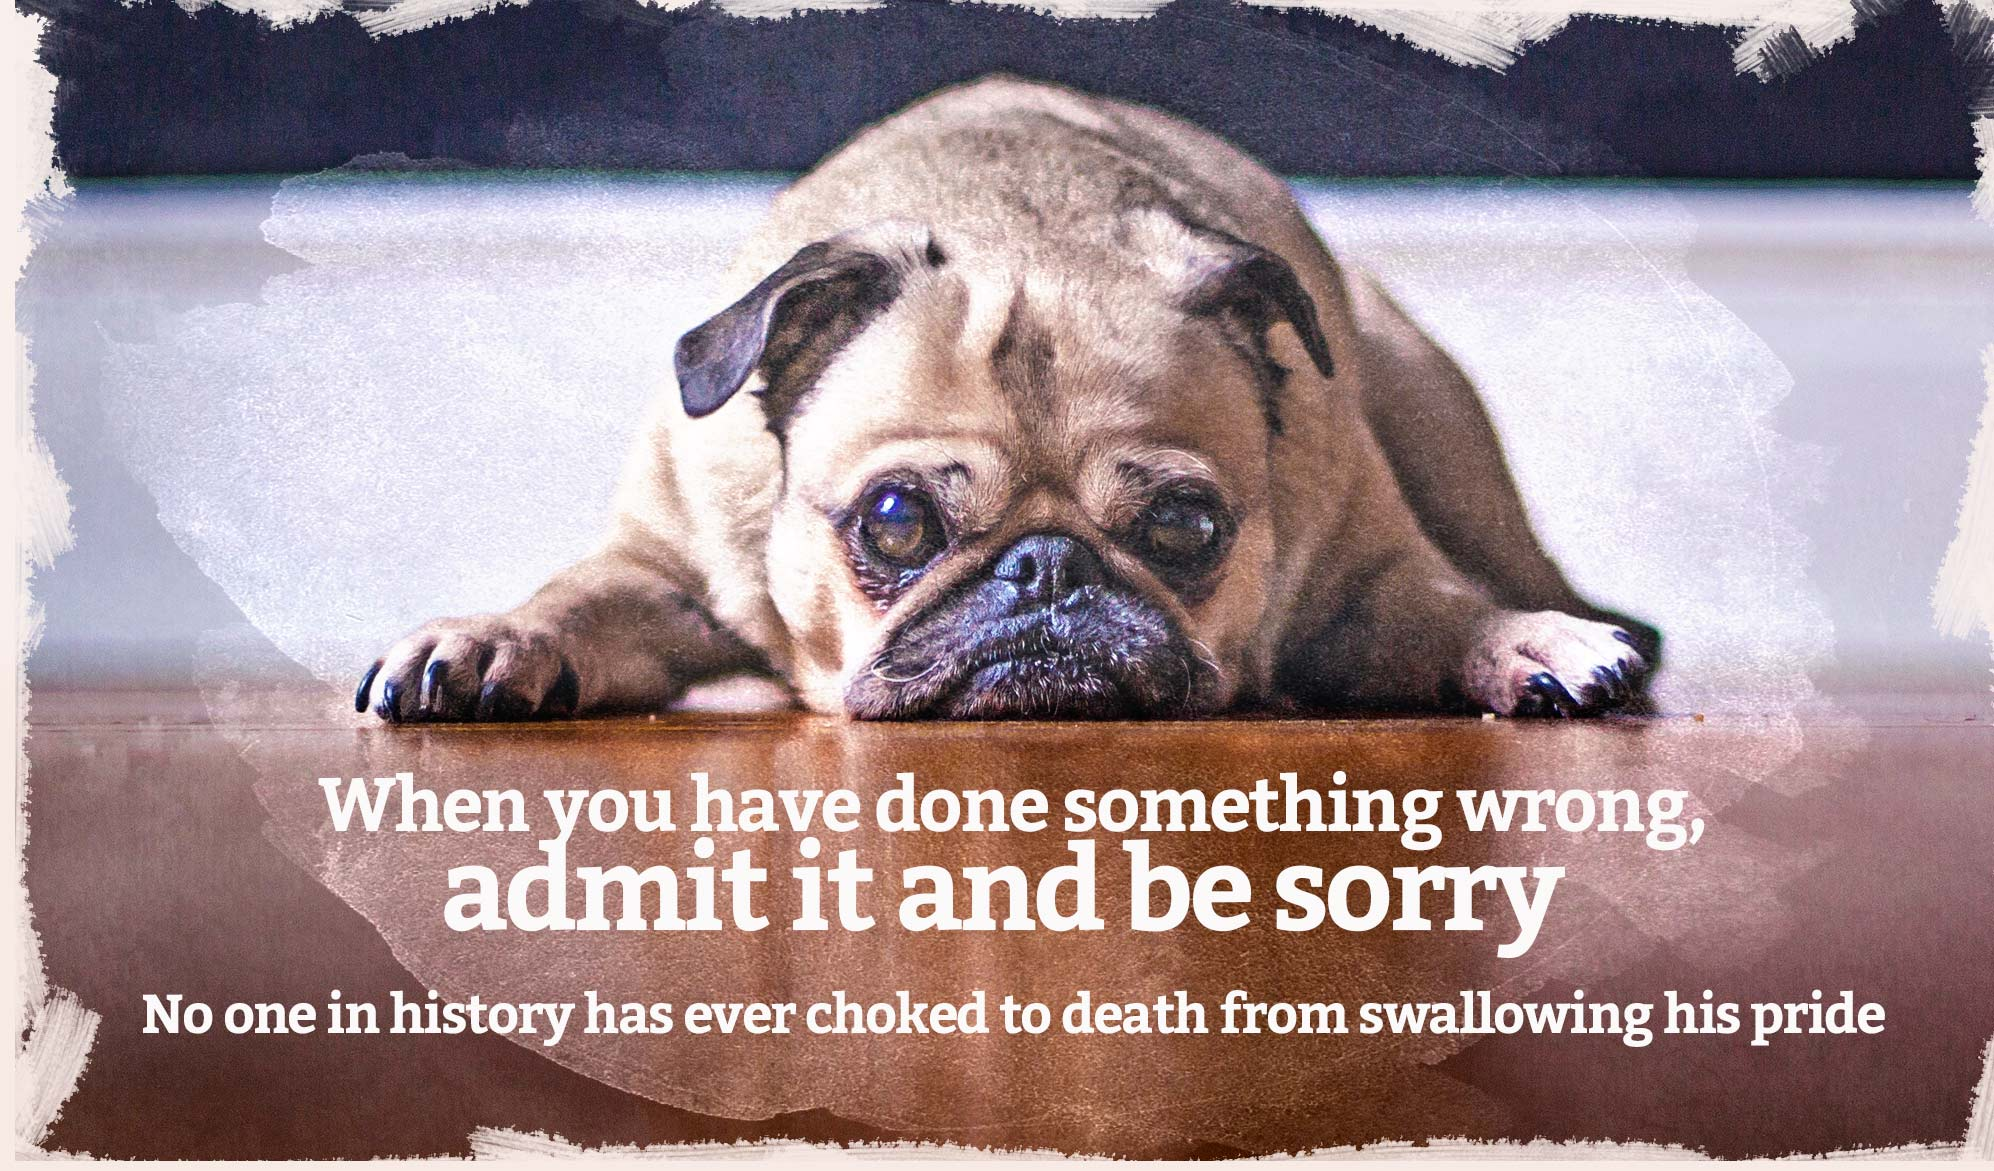 daily inspirational quote image: puppy looking guilty on the floor